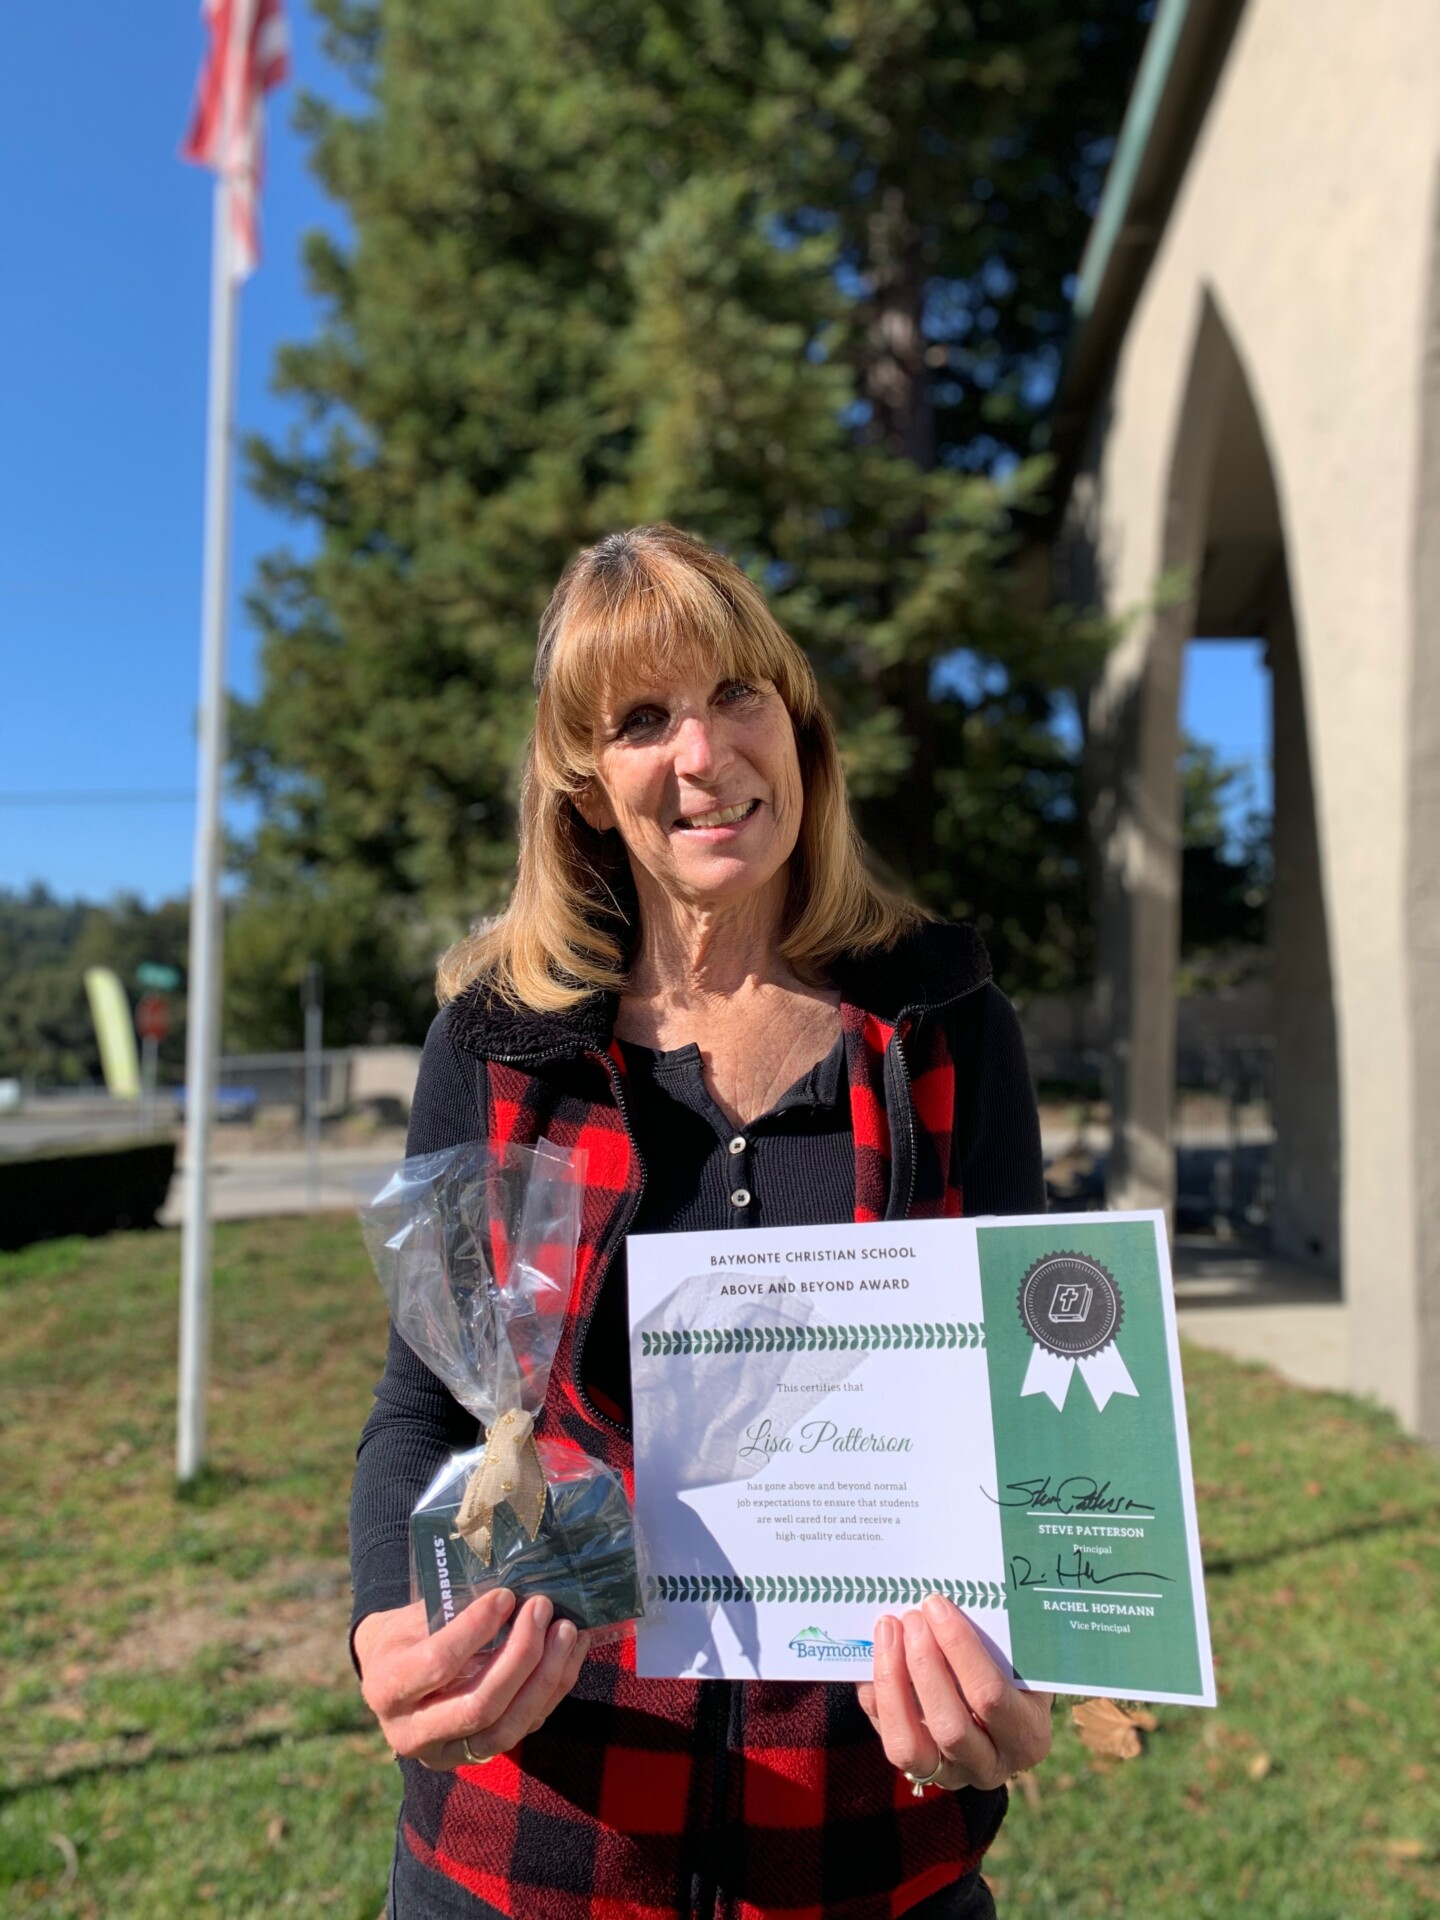 Above and Beyond Award: Lisa Patterson